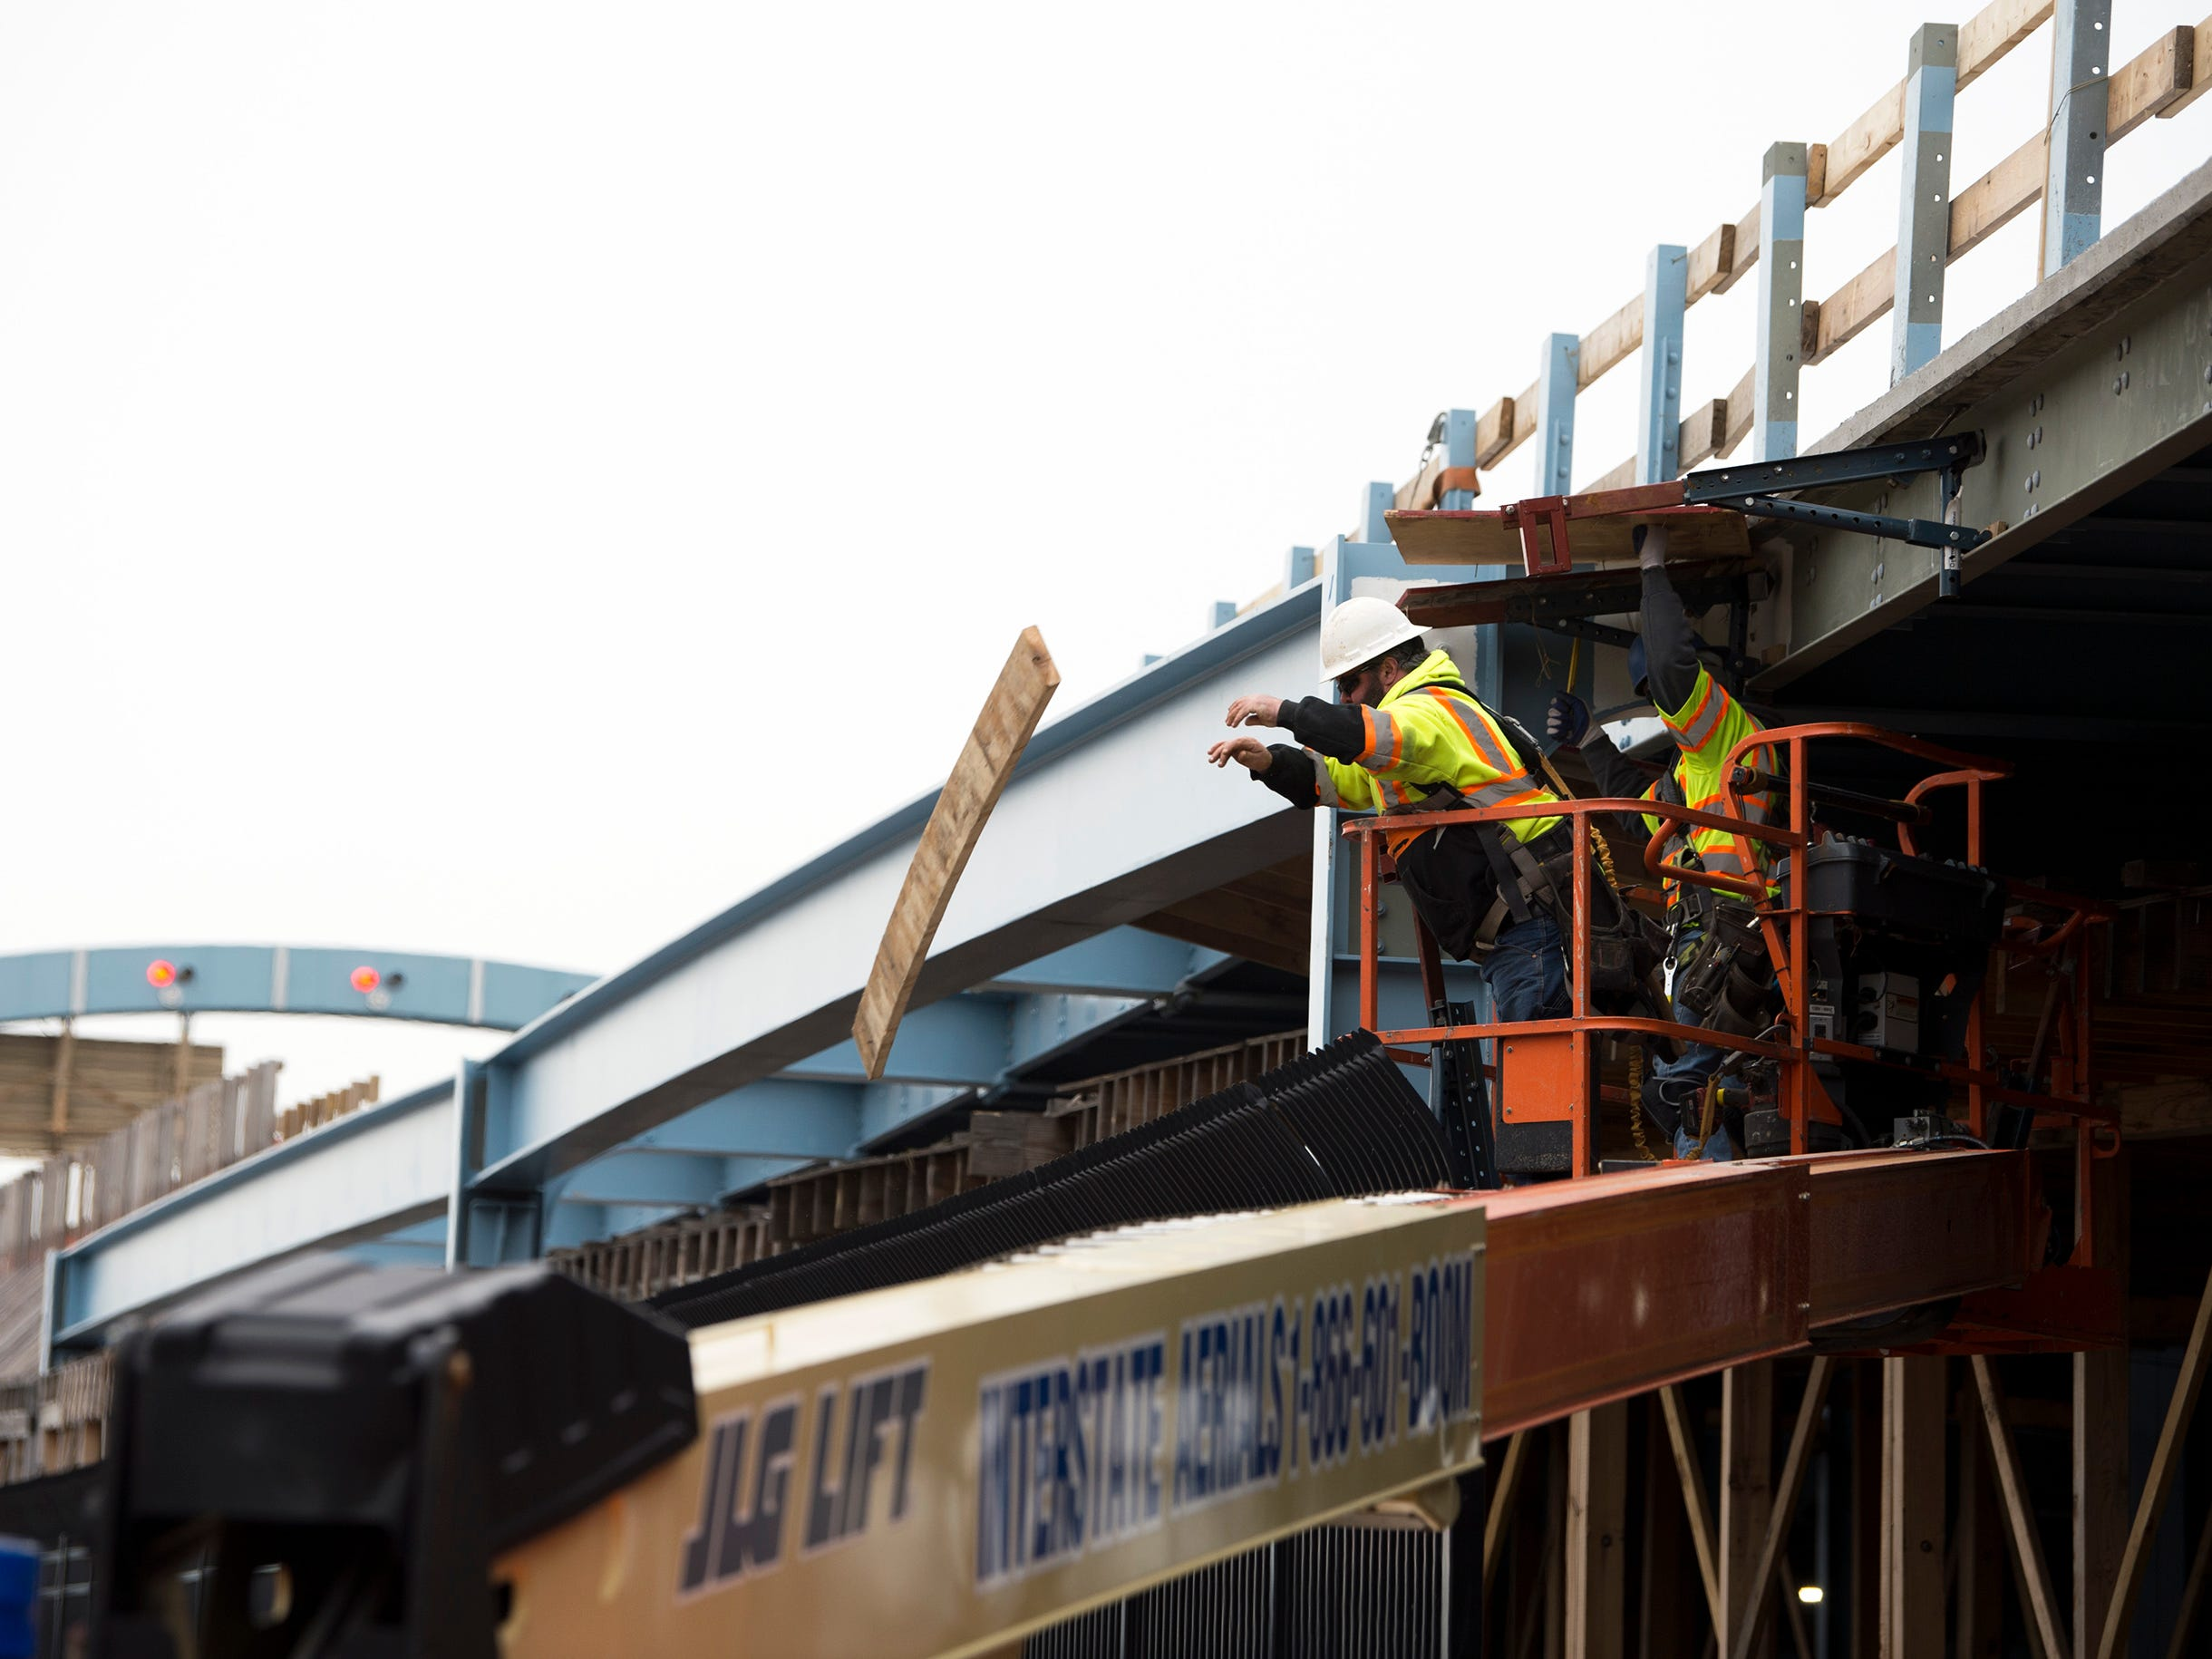 Carpenters Local 255 worker Mike Carman of Collingswood  removes temporary wooden ramp supports during ongoing construction continues of a pedestrian and bicycle ramp on the Benjamin Franklin Bridge Monday, Jan. 7, 2019 in Camden, N.J.